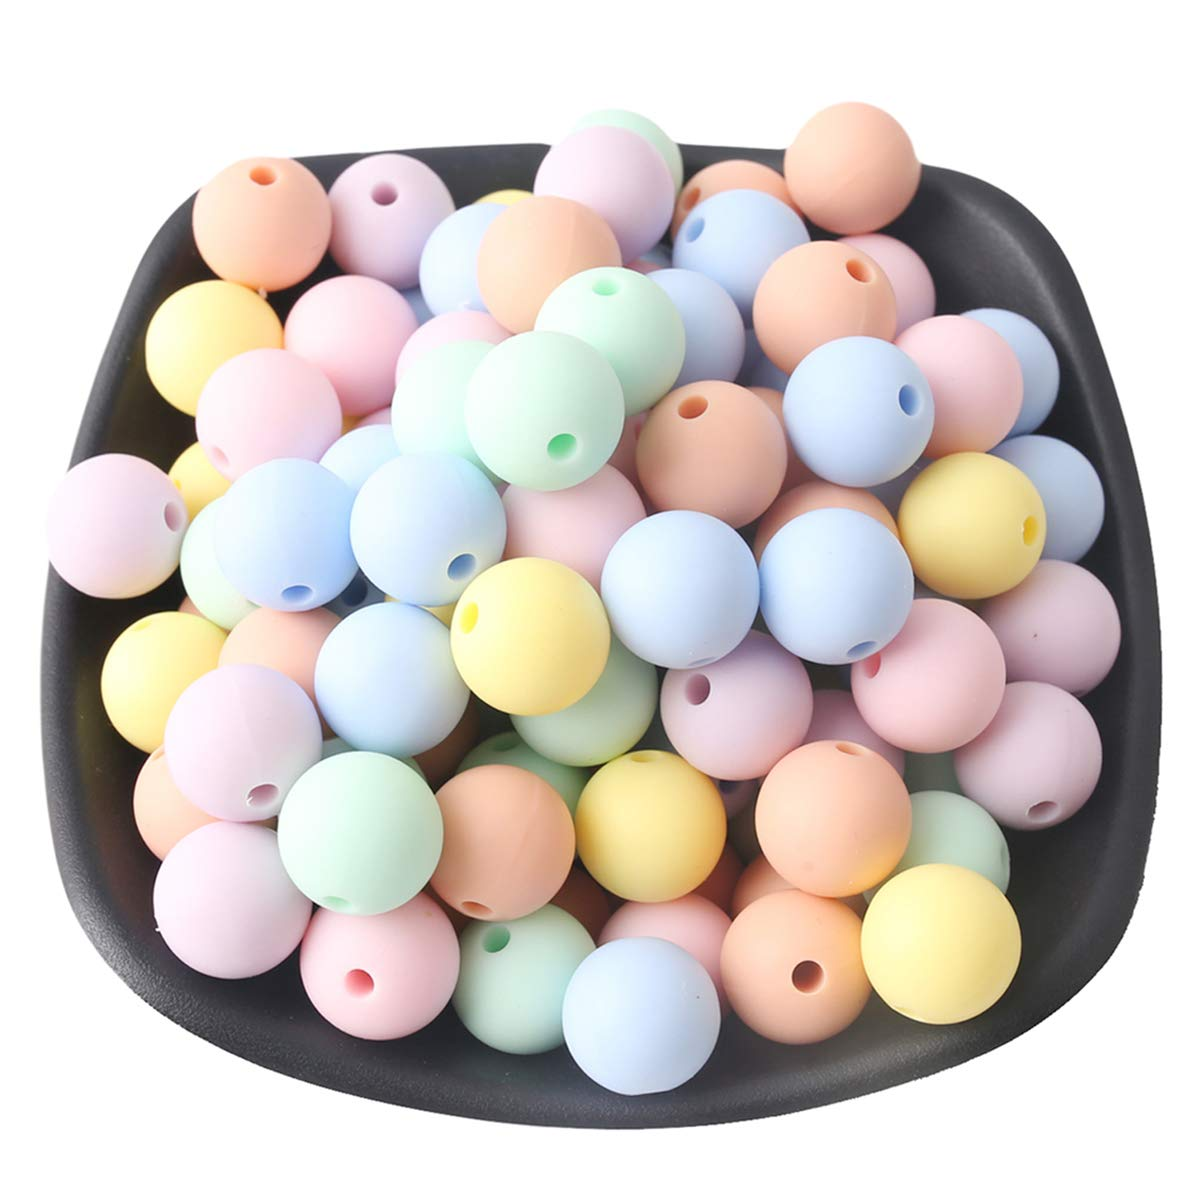 Baby Love Home Baby Teether Silicone Beads 50pc 15mm BPA Free Candy Color Round Balls DIY Teether Bracelet Beads for Kid Handmade Crafts Teether Toys